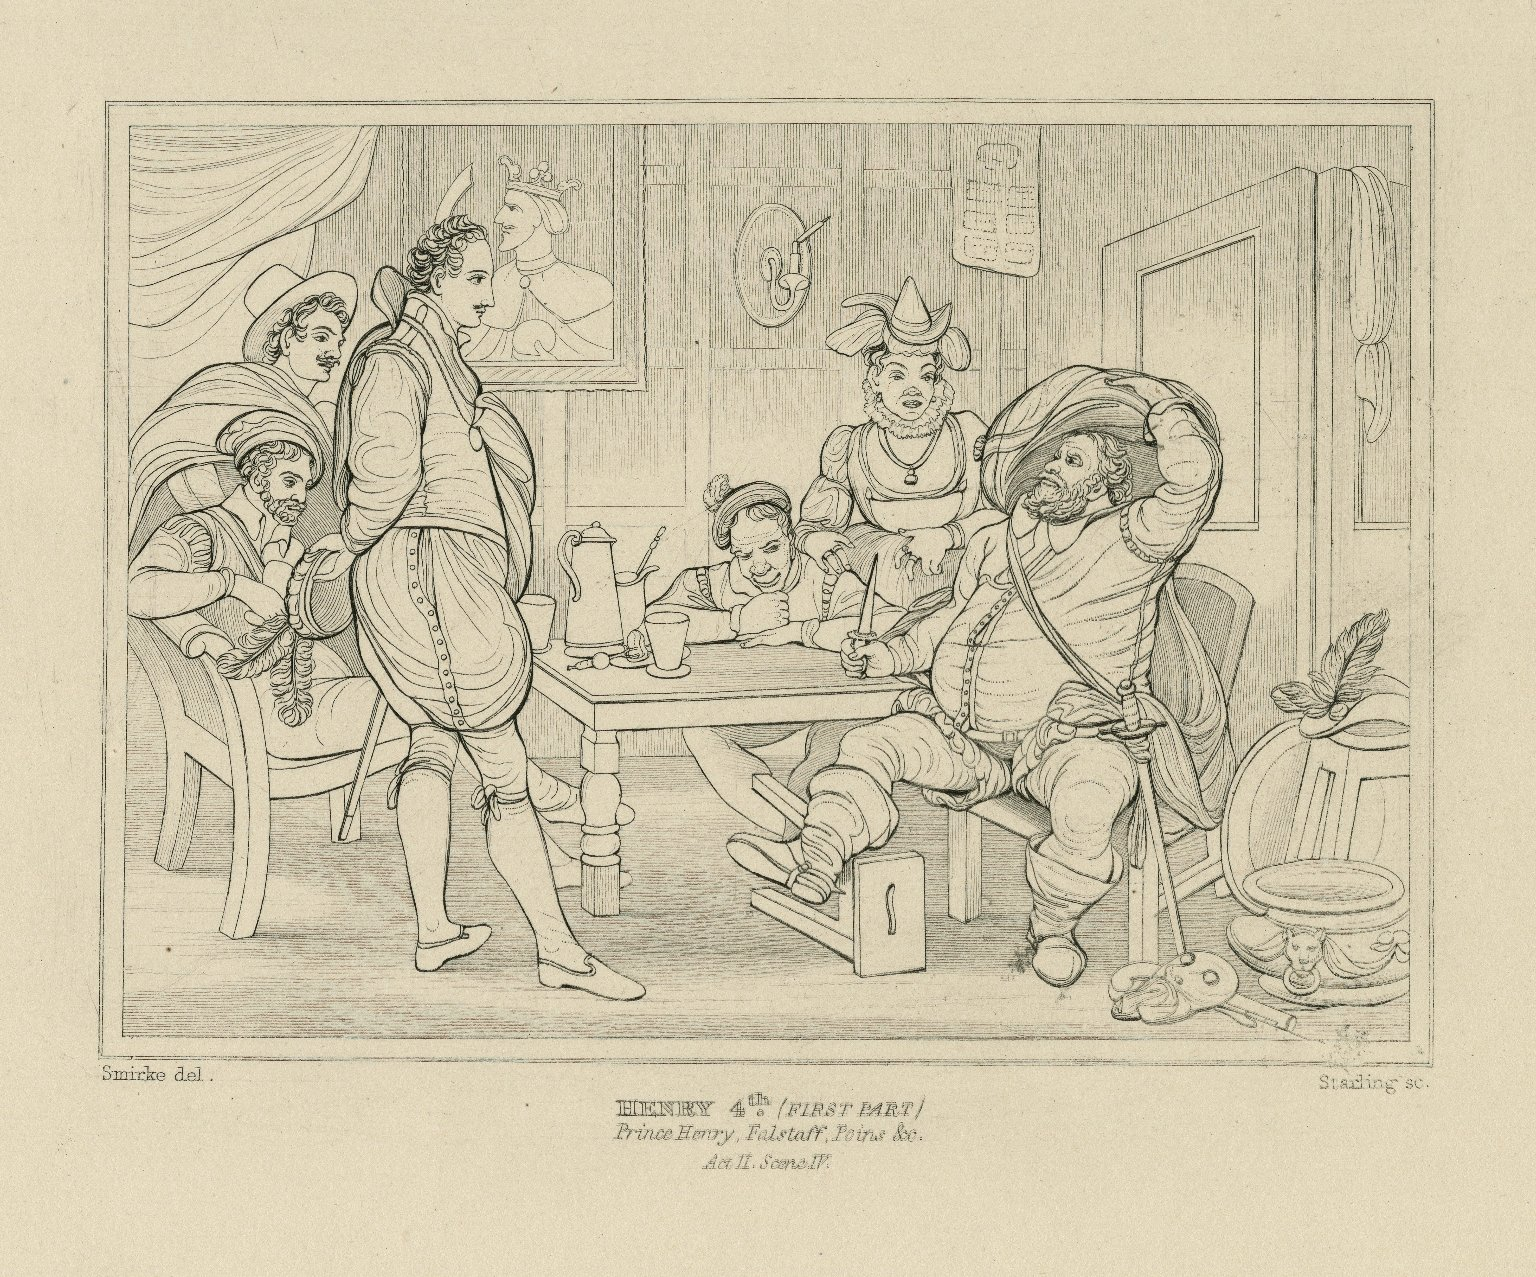 King Henry 4th, first part, Prince Henry, Falstaff, Poins, &c., act II, sc. IV [graphic] / Smirke del. ; Starling sc.